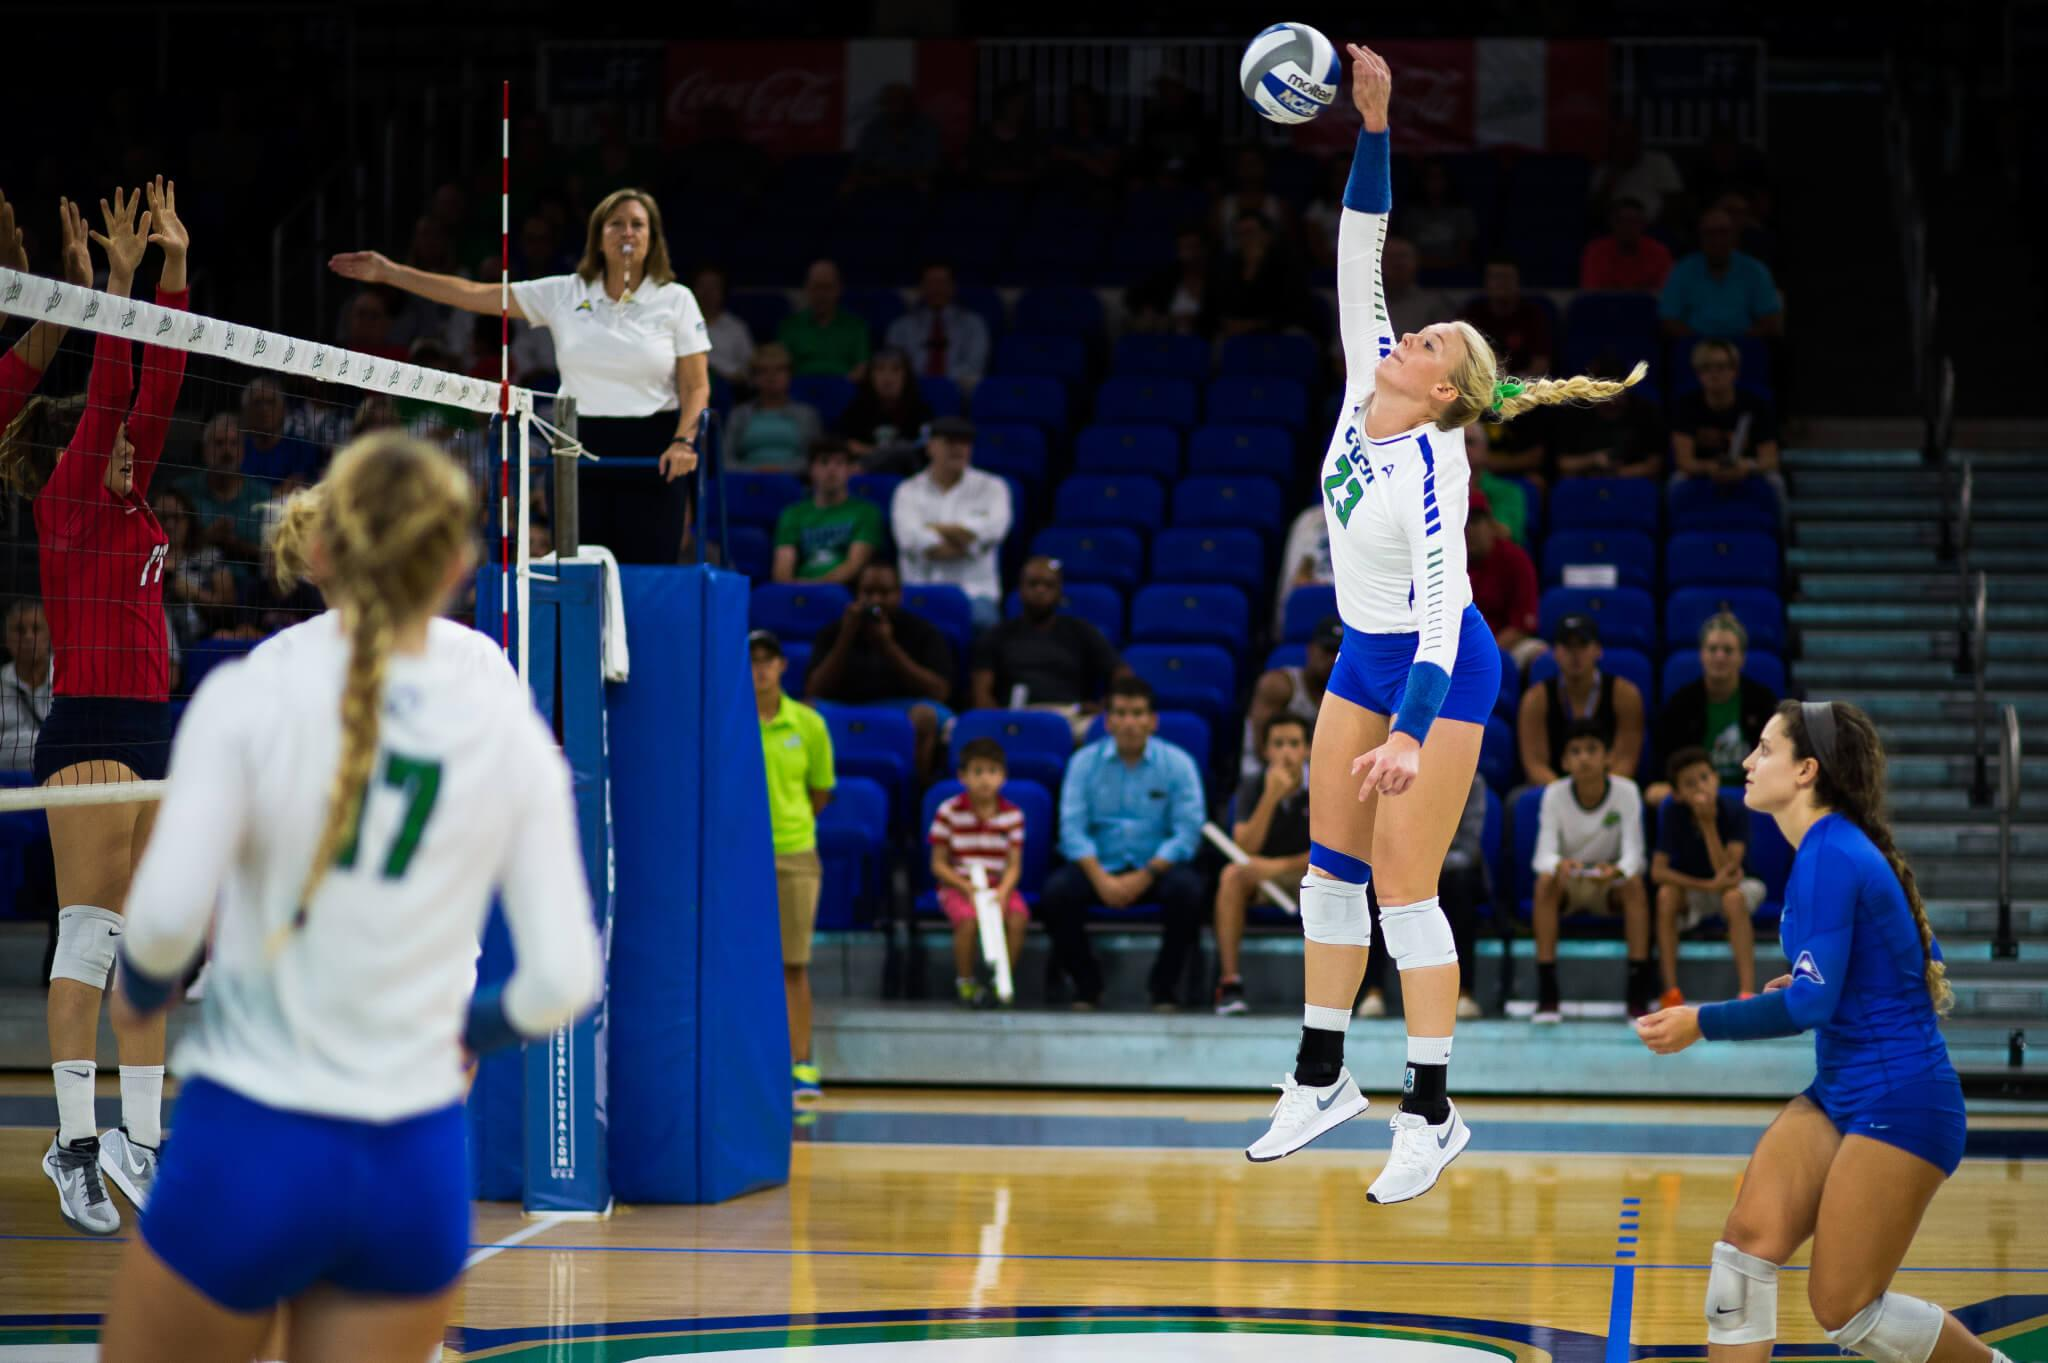 FGCU women' volleyball team matches program best 15 game win streak with 3-0 victory over USC Upstate